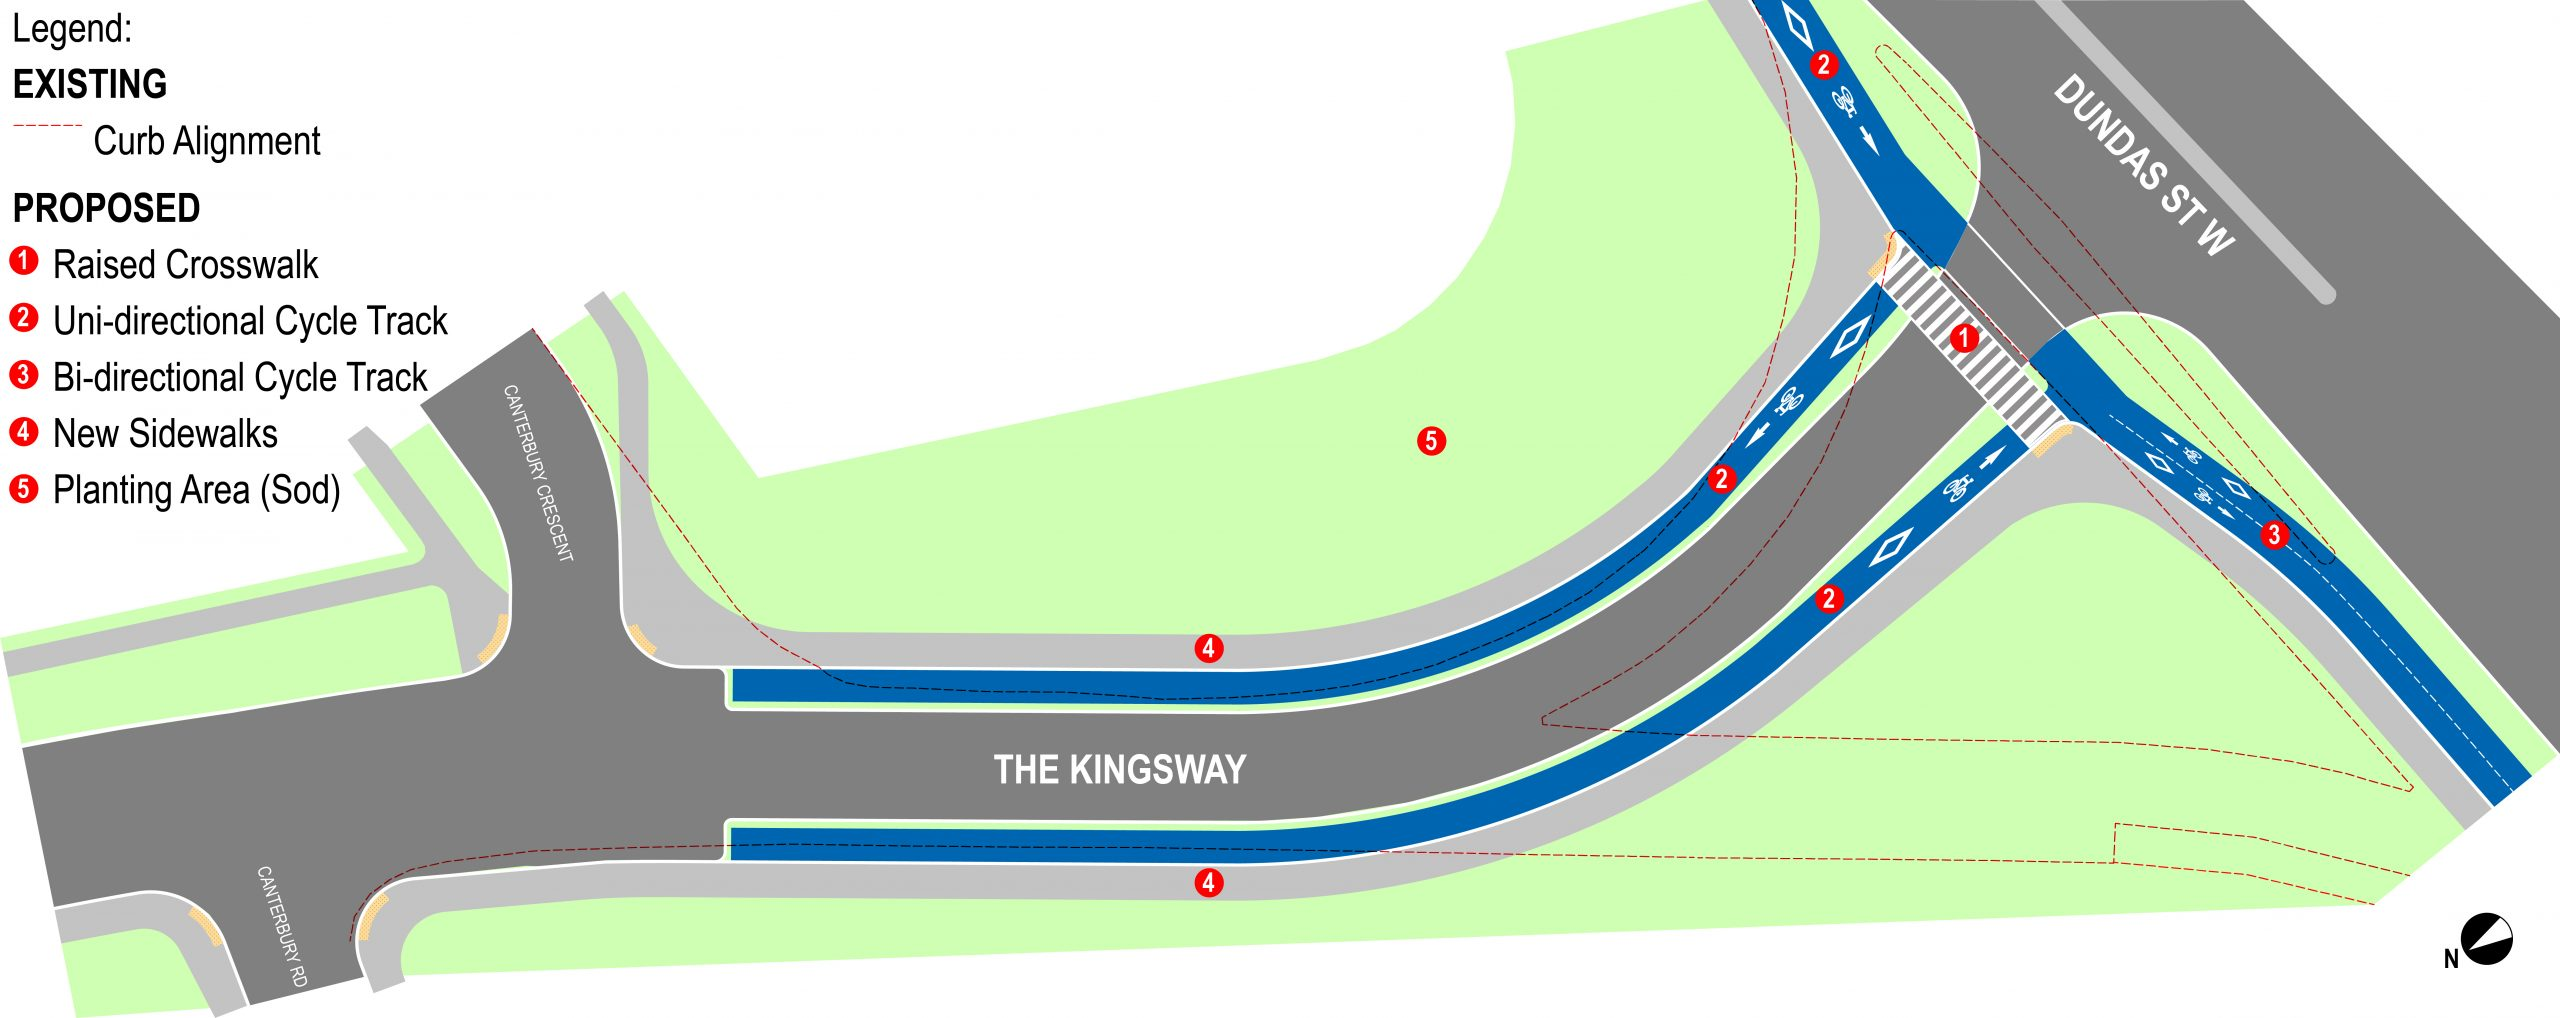 Drawing of the redesigned intersection of The Kingsway and Dundas showing the new 'T' alignment, new sidewalk and cycle tracks in relation to the existing turn channels.